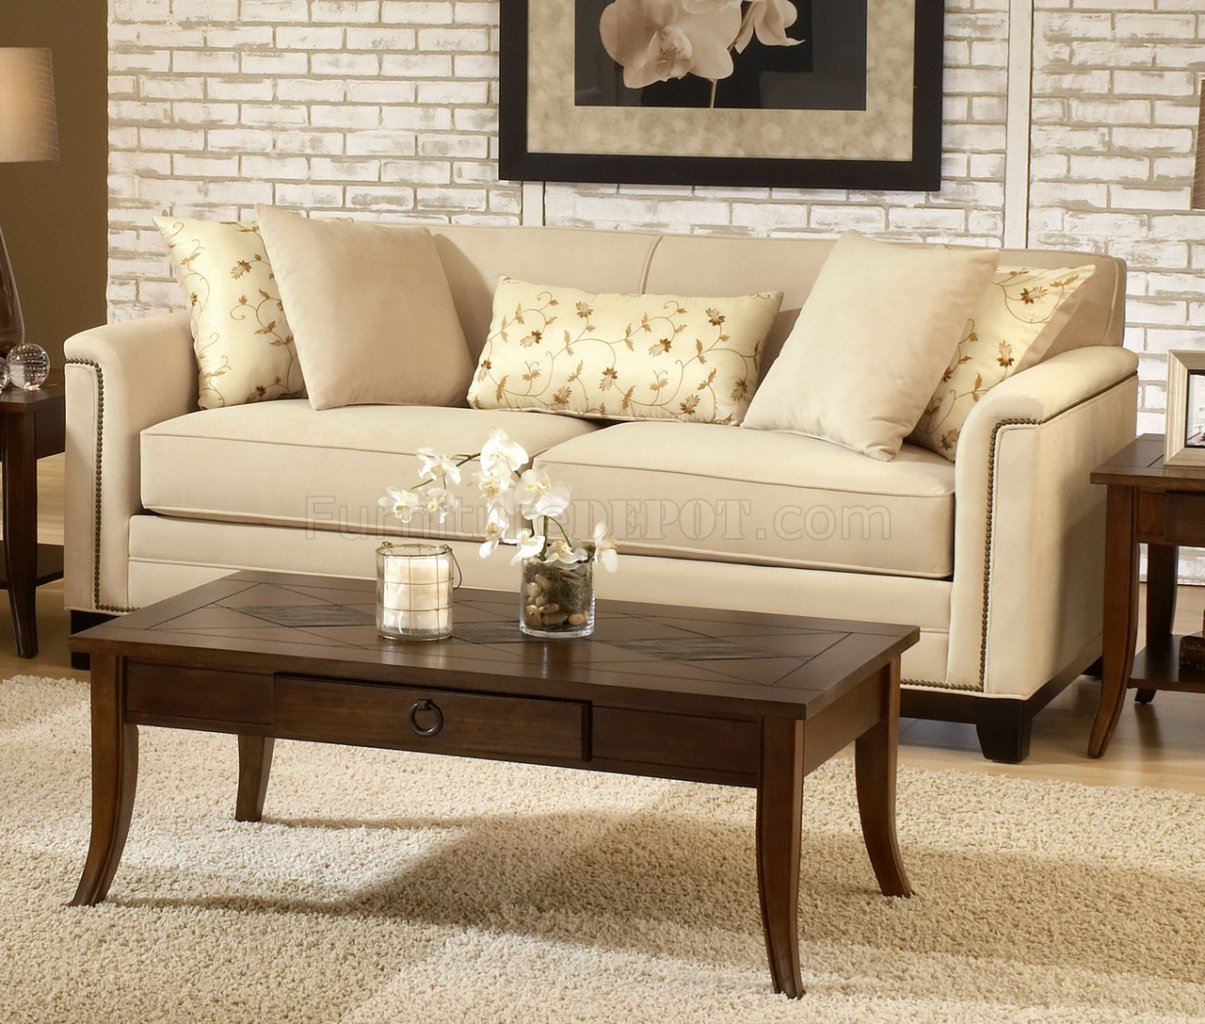 Chair Couch Set And Loveseat